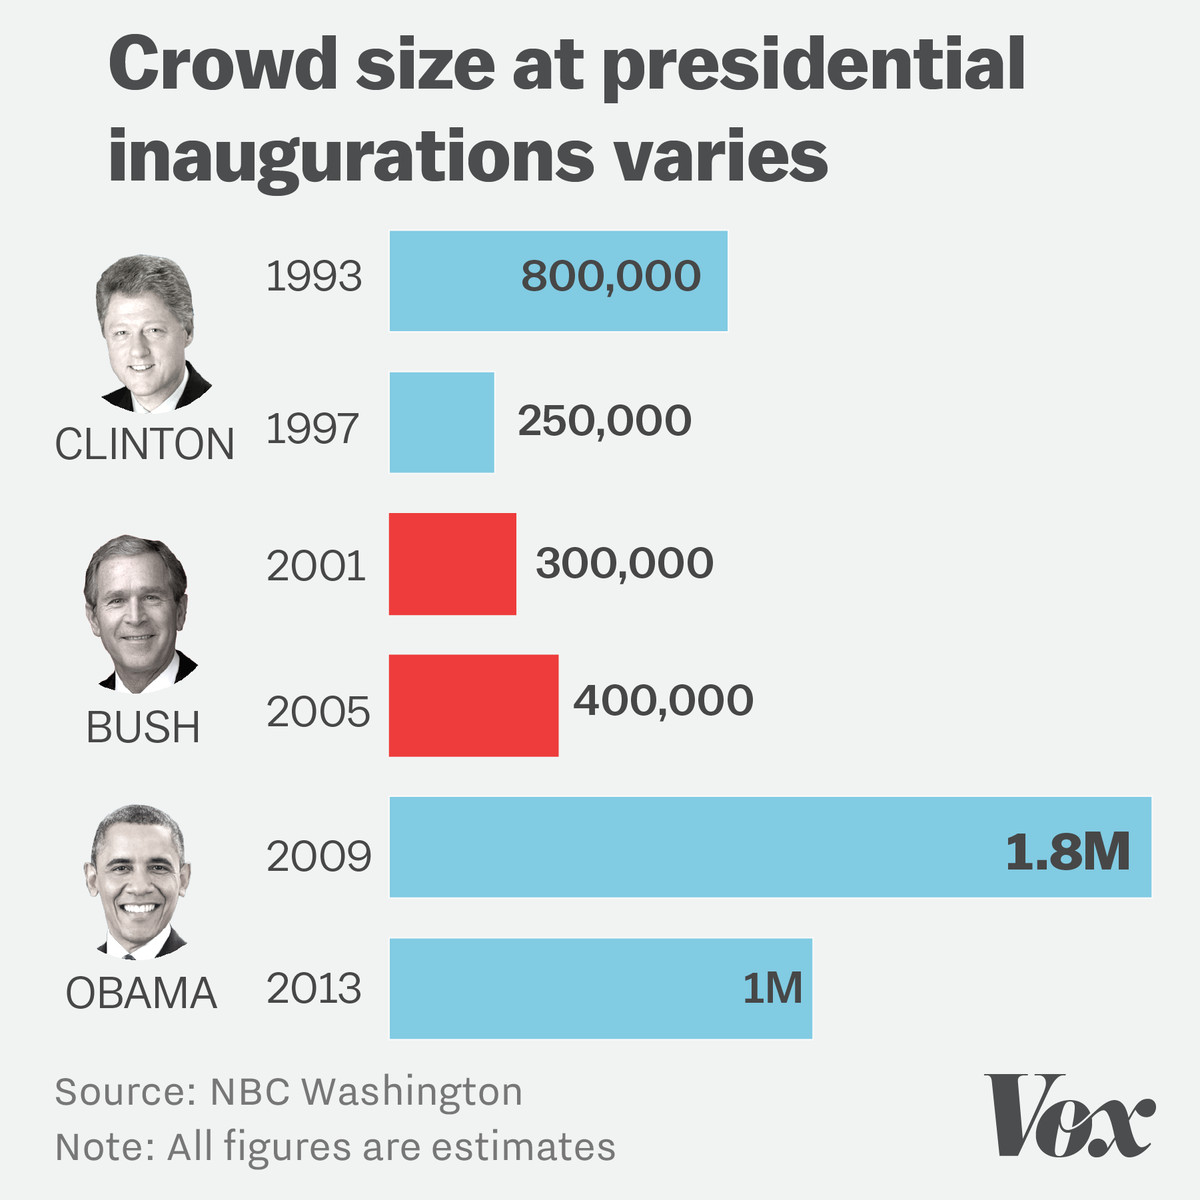 A crowd scientist says Trump's inauguration attendance was